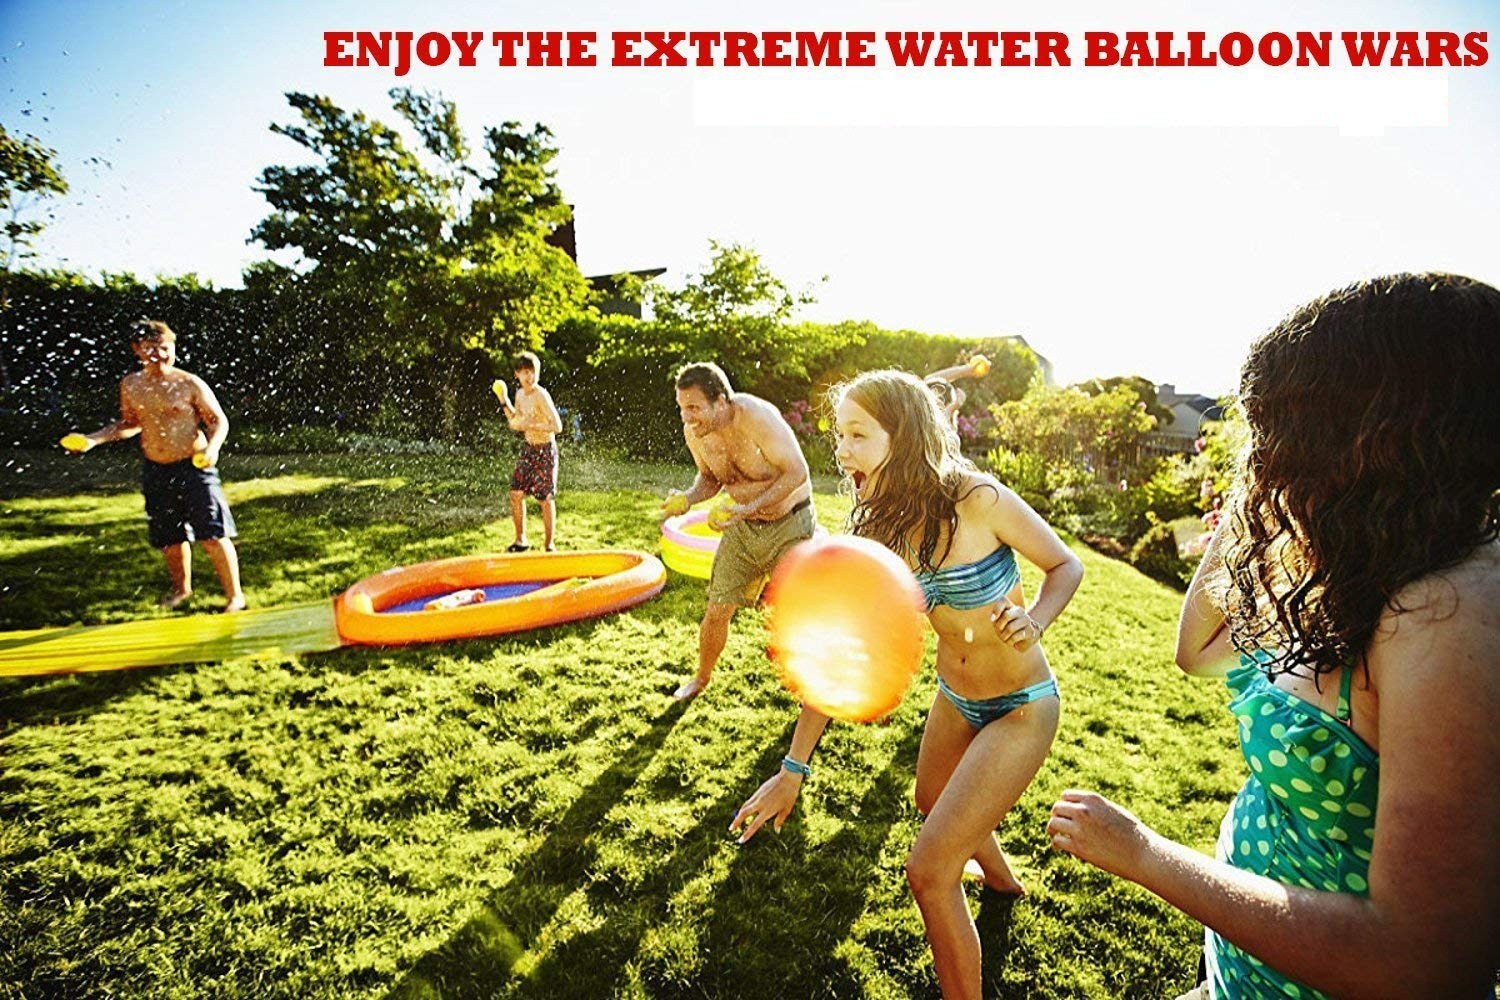 Summer Water Balloon Children's Kid's Toy Water Balloons, Colourful Outdoor  Water Bomb Fight Games, Summer Splash Fun for Kids and Adults